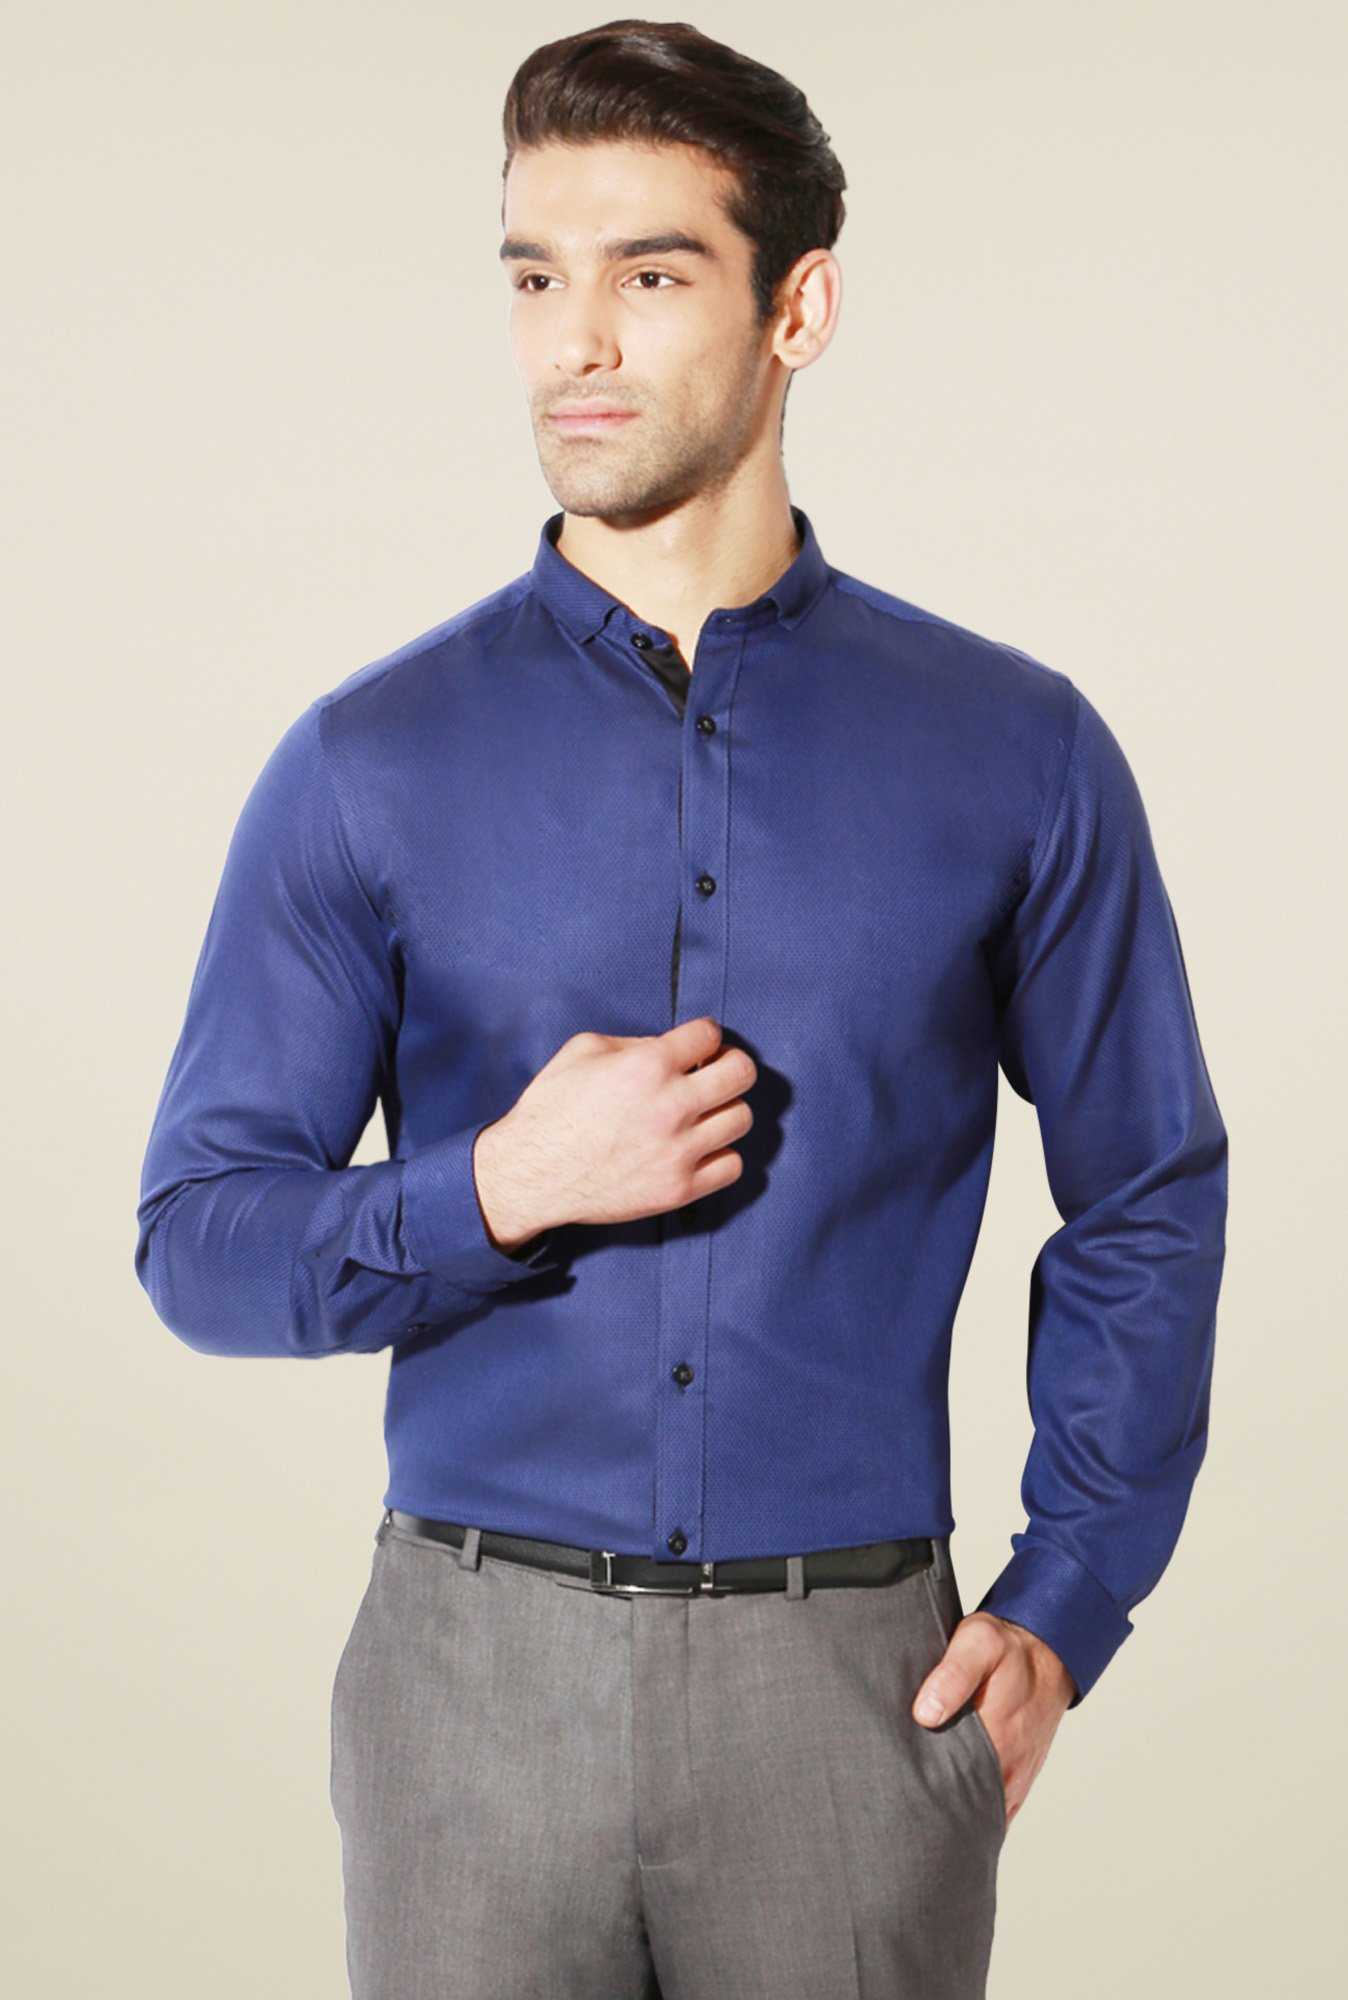 Van Heusen Royal Blue Cotton Shirt